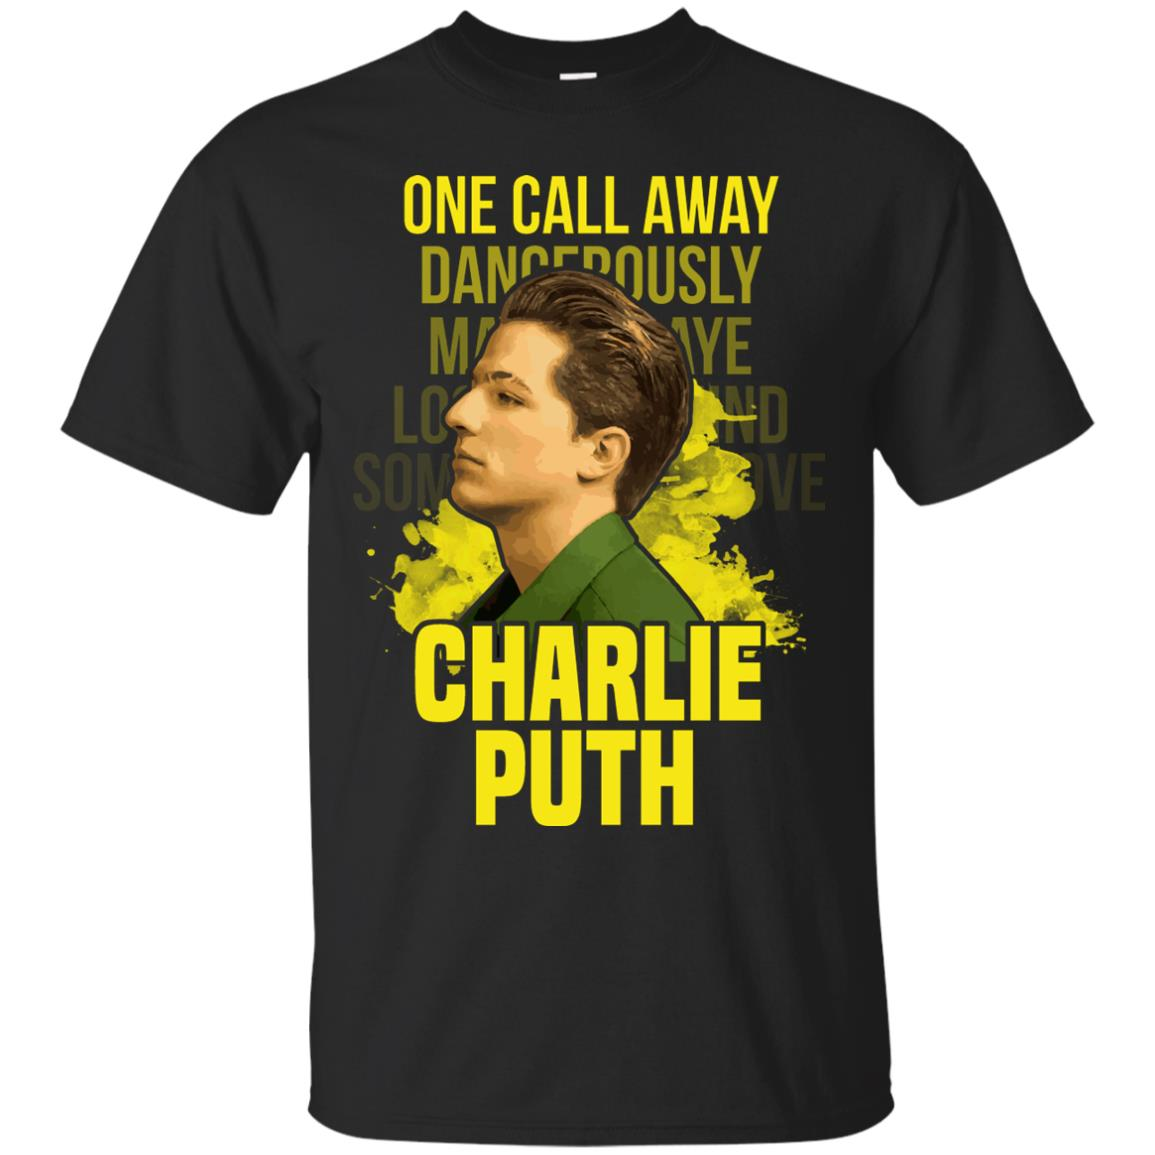 Charlie Puth One Call Away Dancerously T Shirt